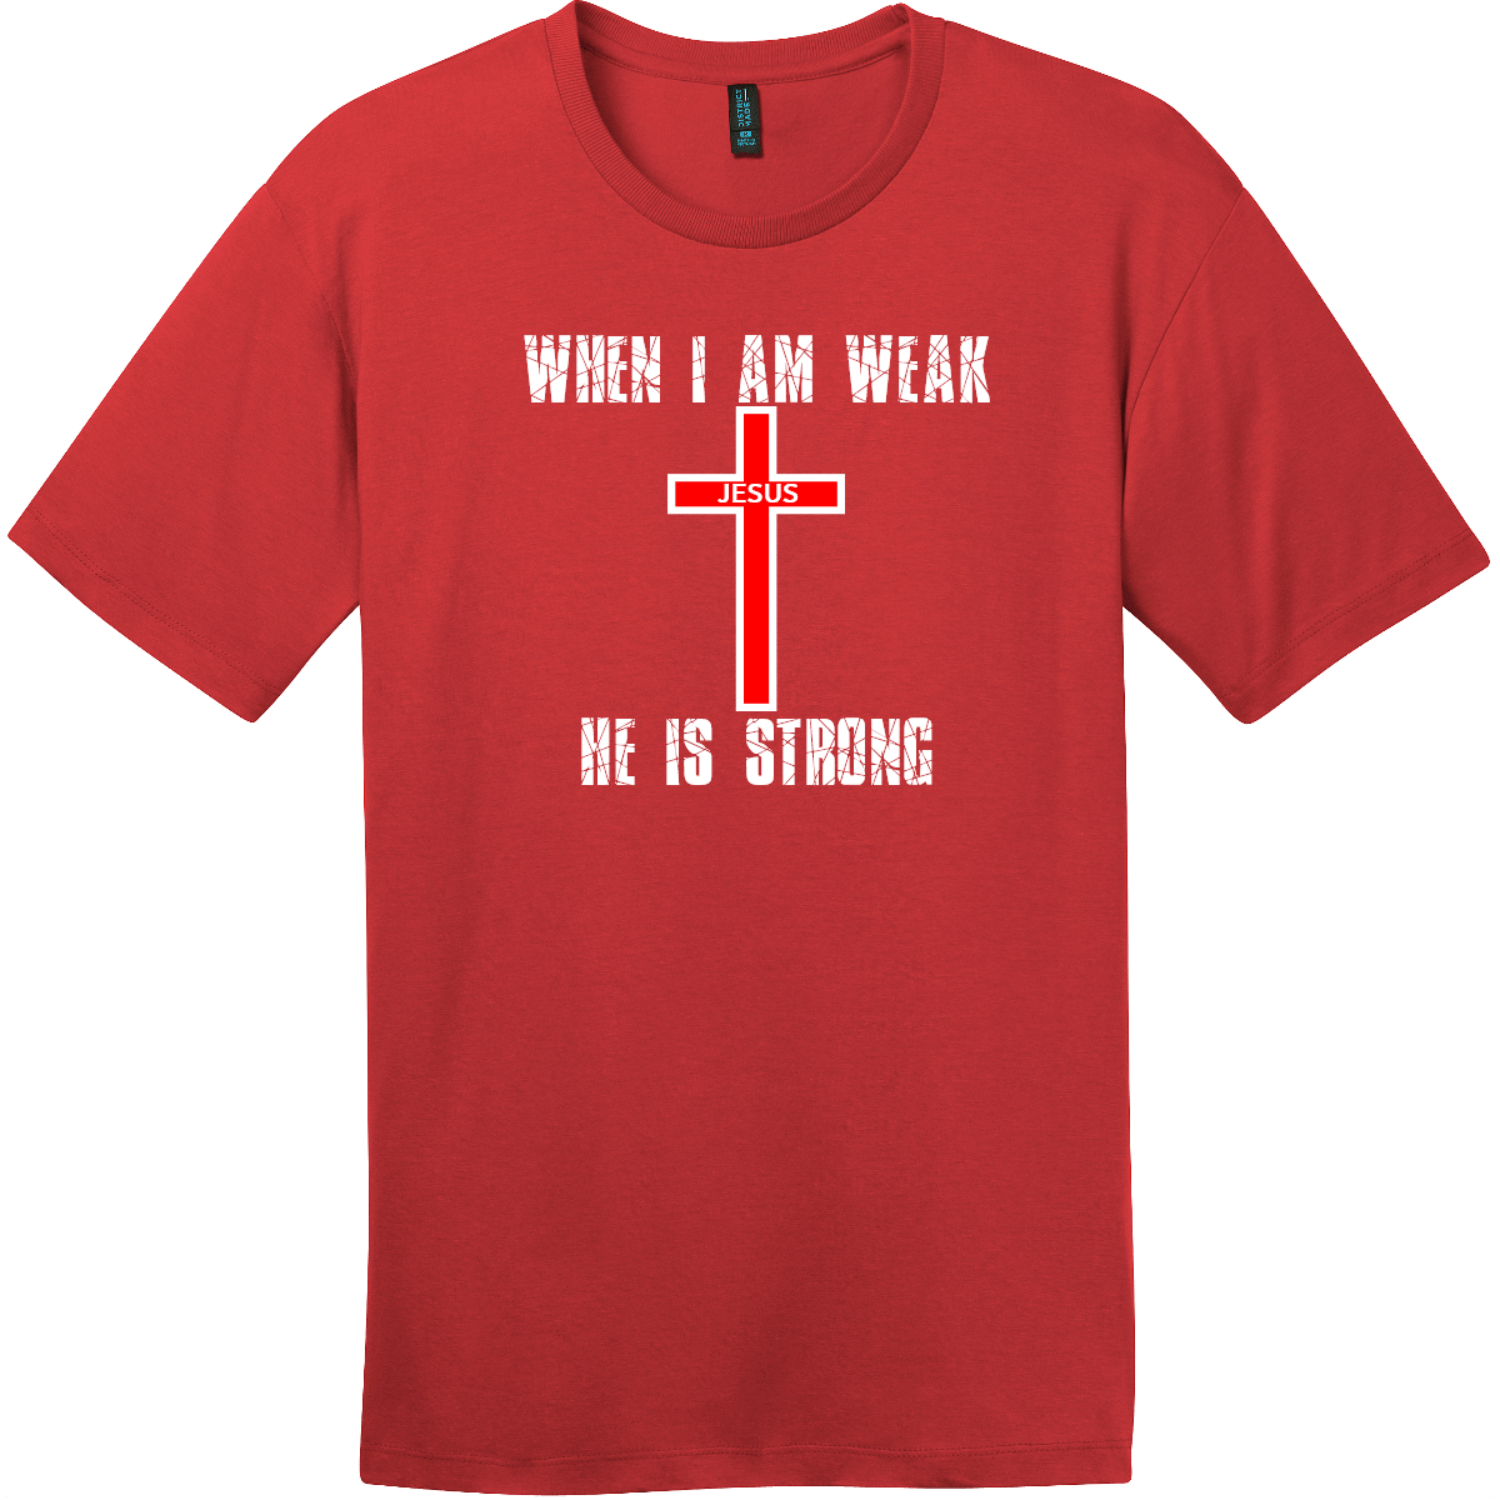 When I Am Weak He Is Strong T-Shirt Classic Red District Perfect Weight Tee DT104